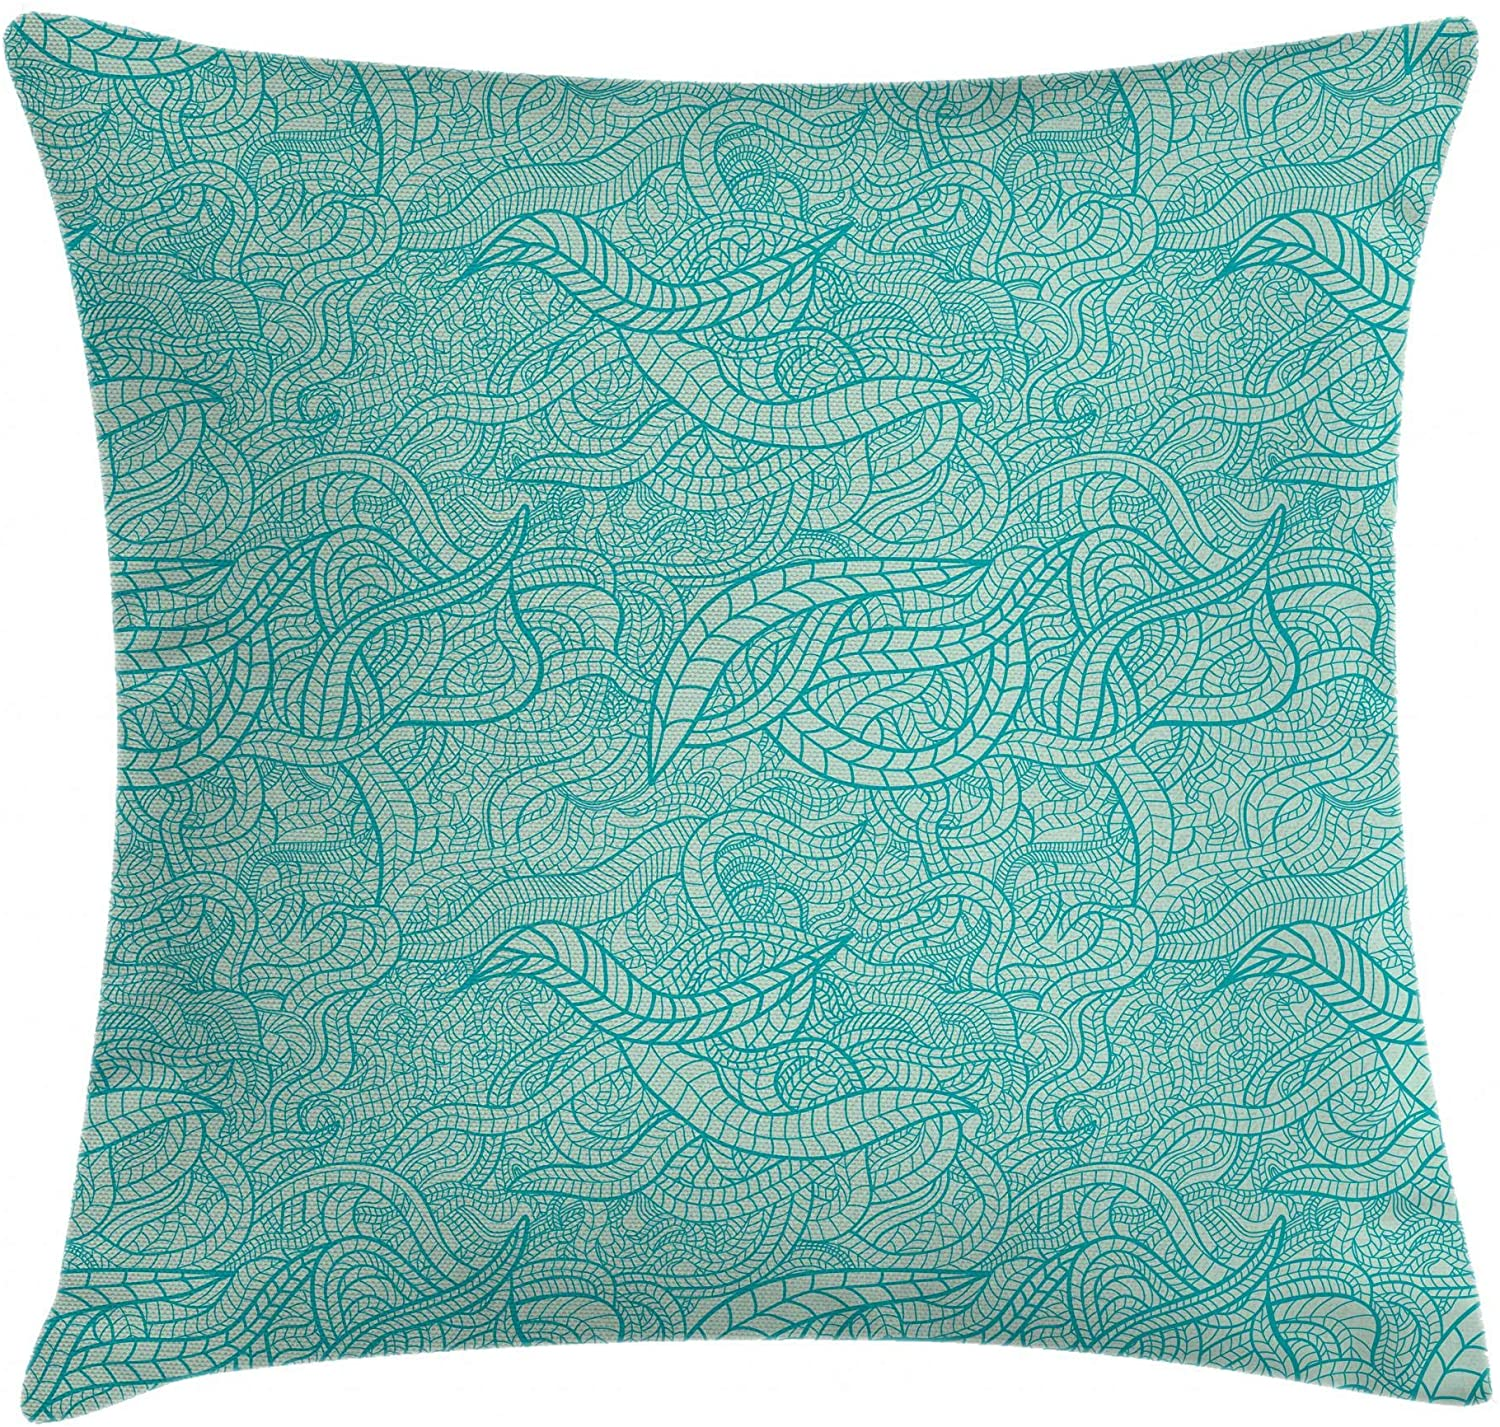 Ambesonne Aqua Throw Pillow Cushion Cover, Vintage Botanic Nature Leaves Veins Swirls Ivy Mosaic Inspired Image Print, Decorative Square Accent Pillow Case, 16